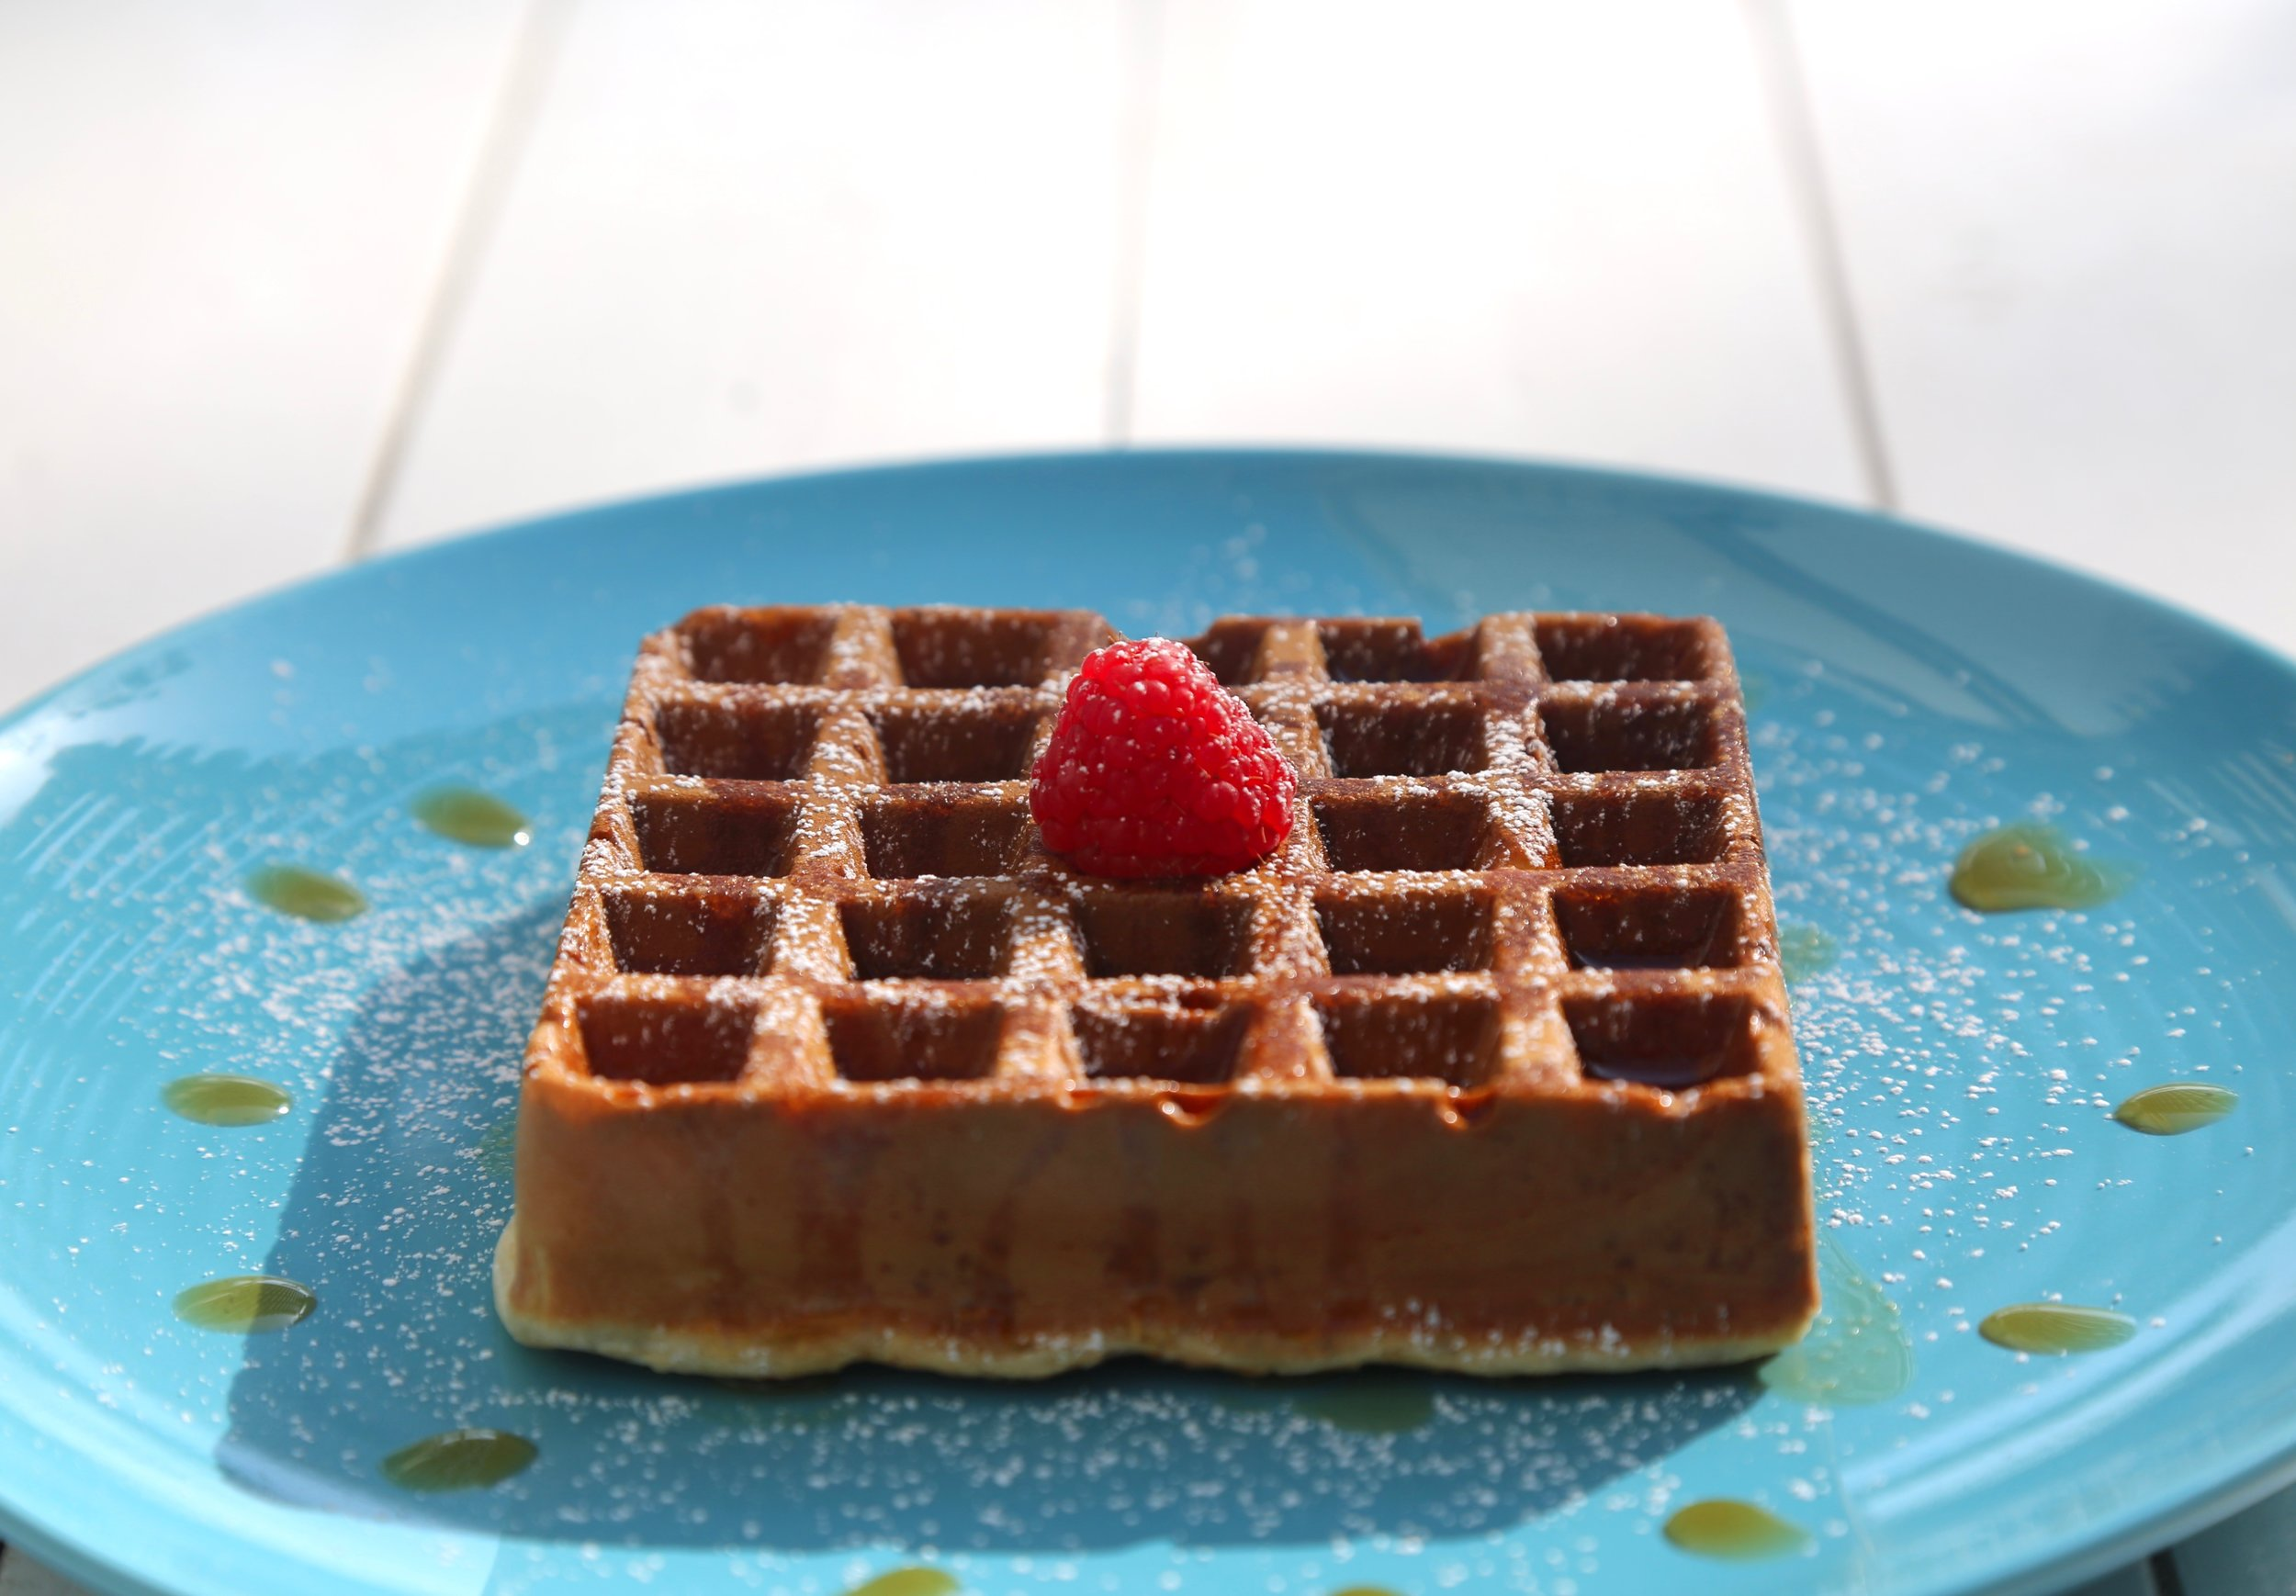 Waffles: Sugar dusted or maple syrup on the side